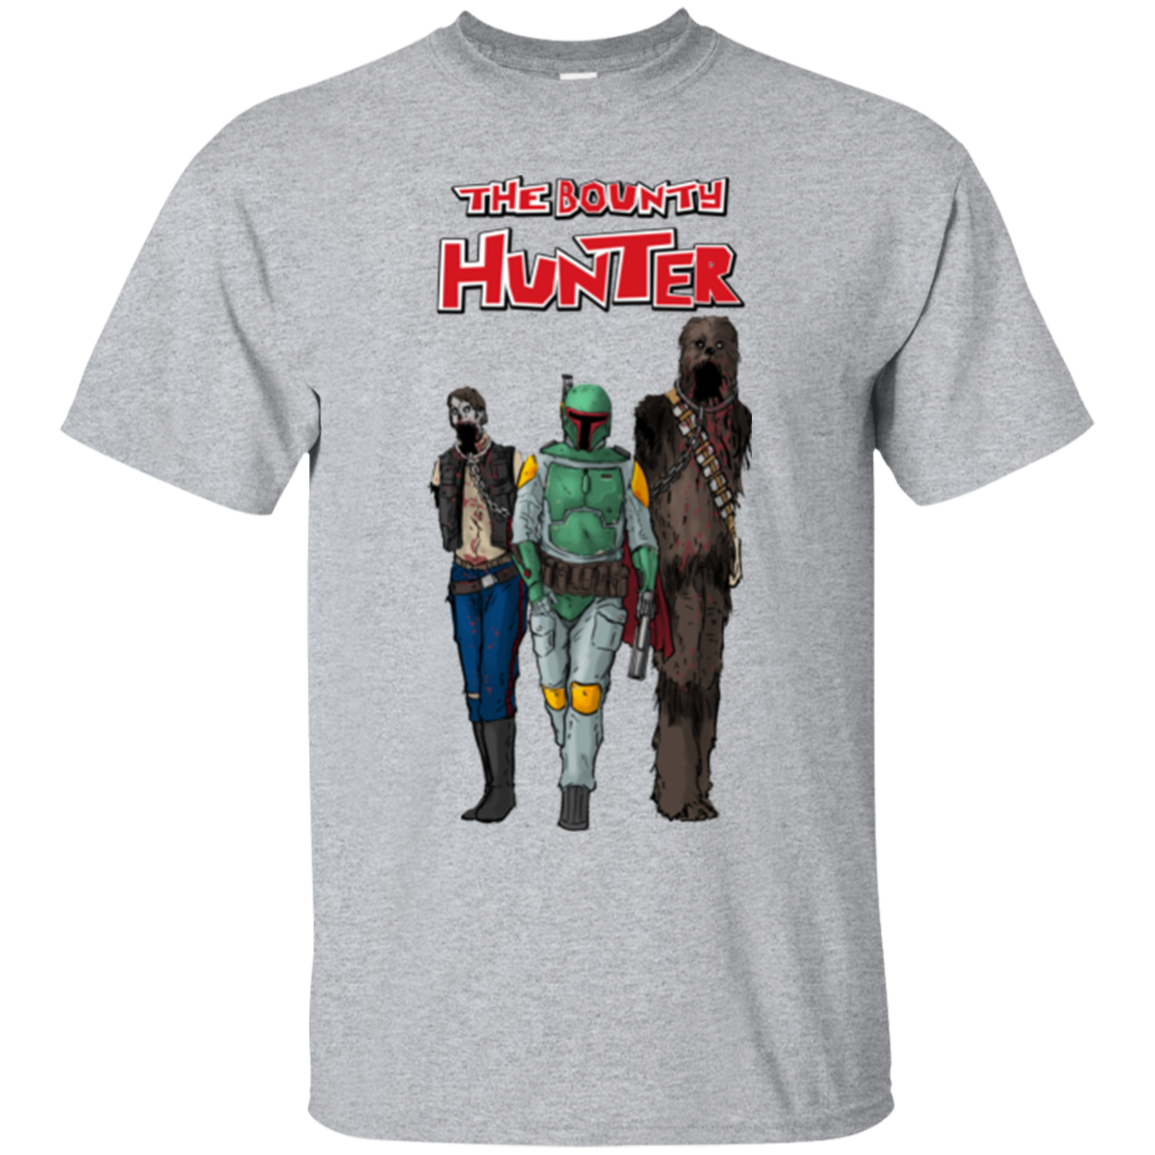 The Walking Bounty Hunter T-Shirt